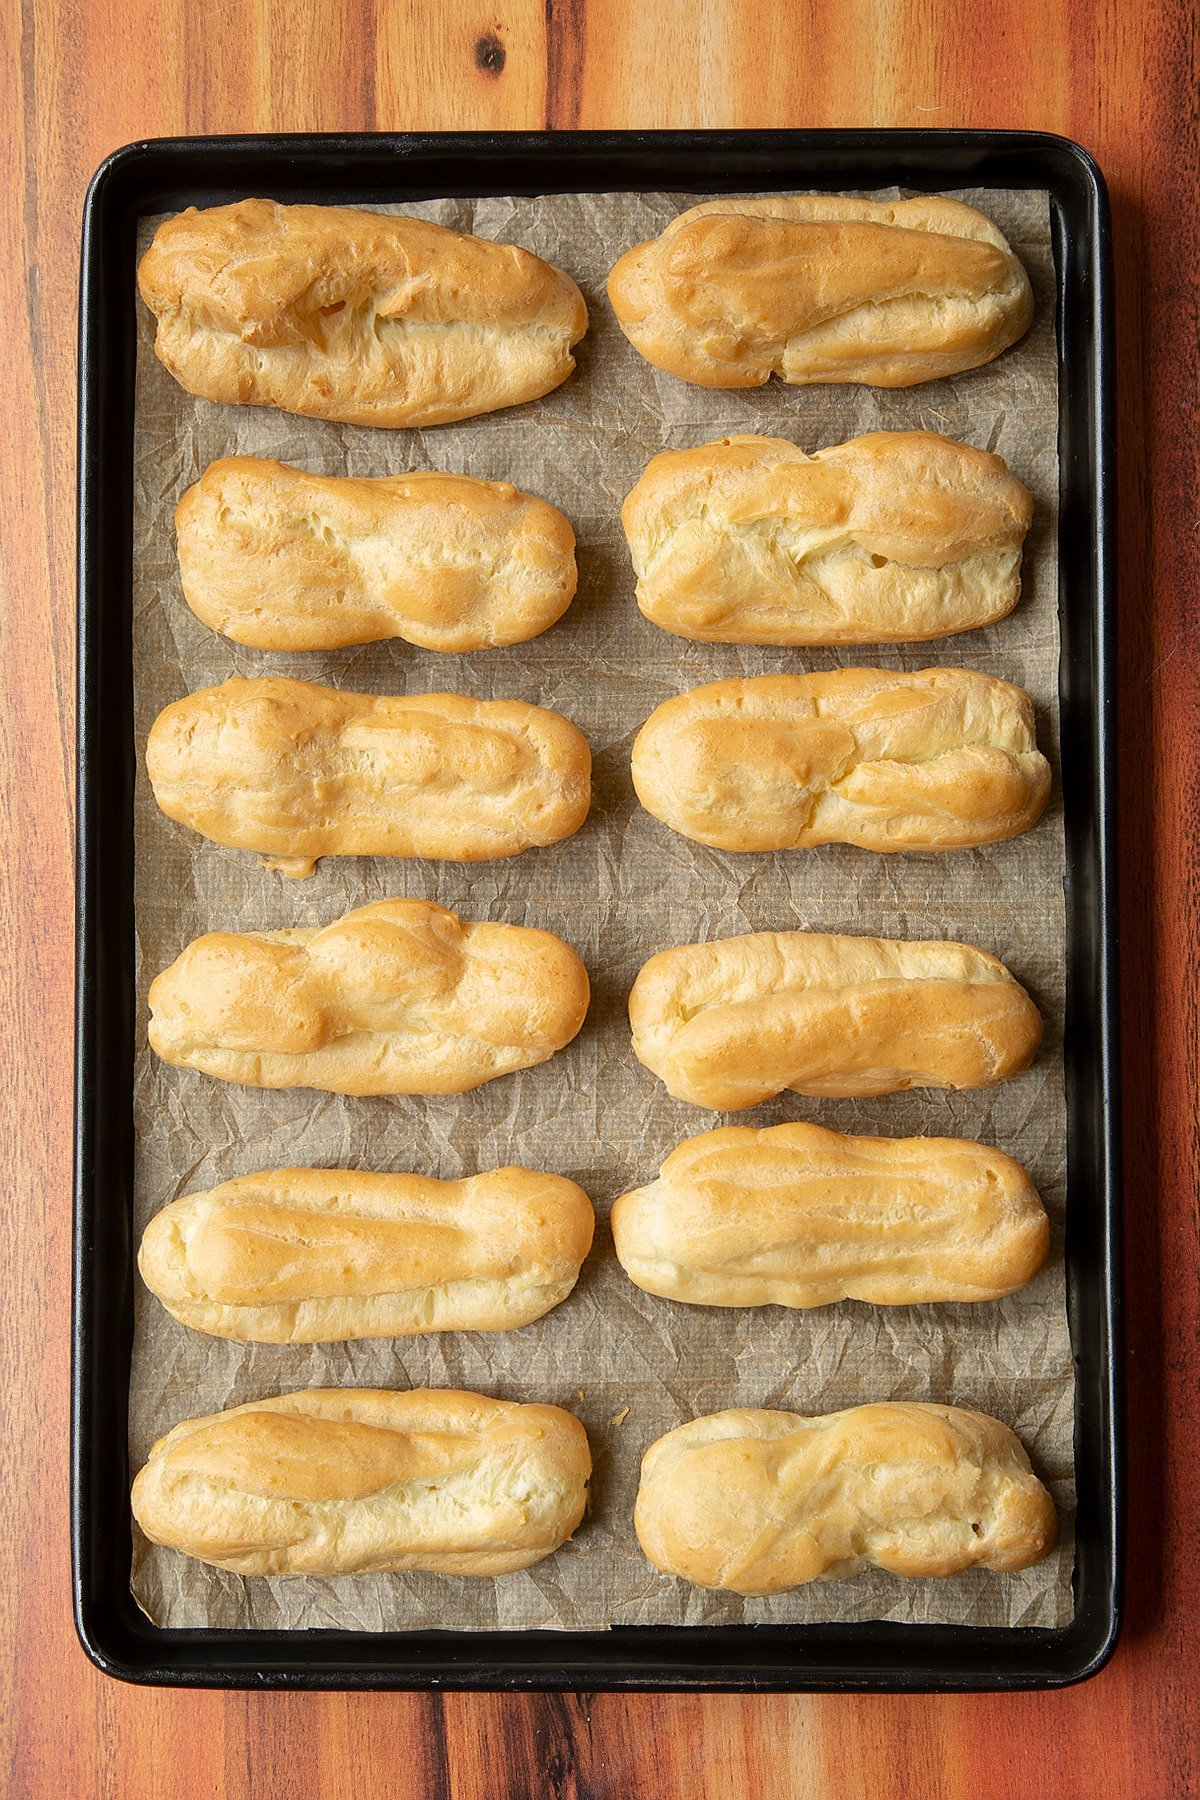 Overhead shot of a baked choux pastry on a baking tray.